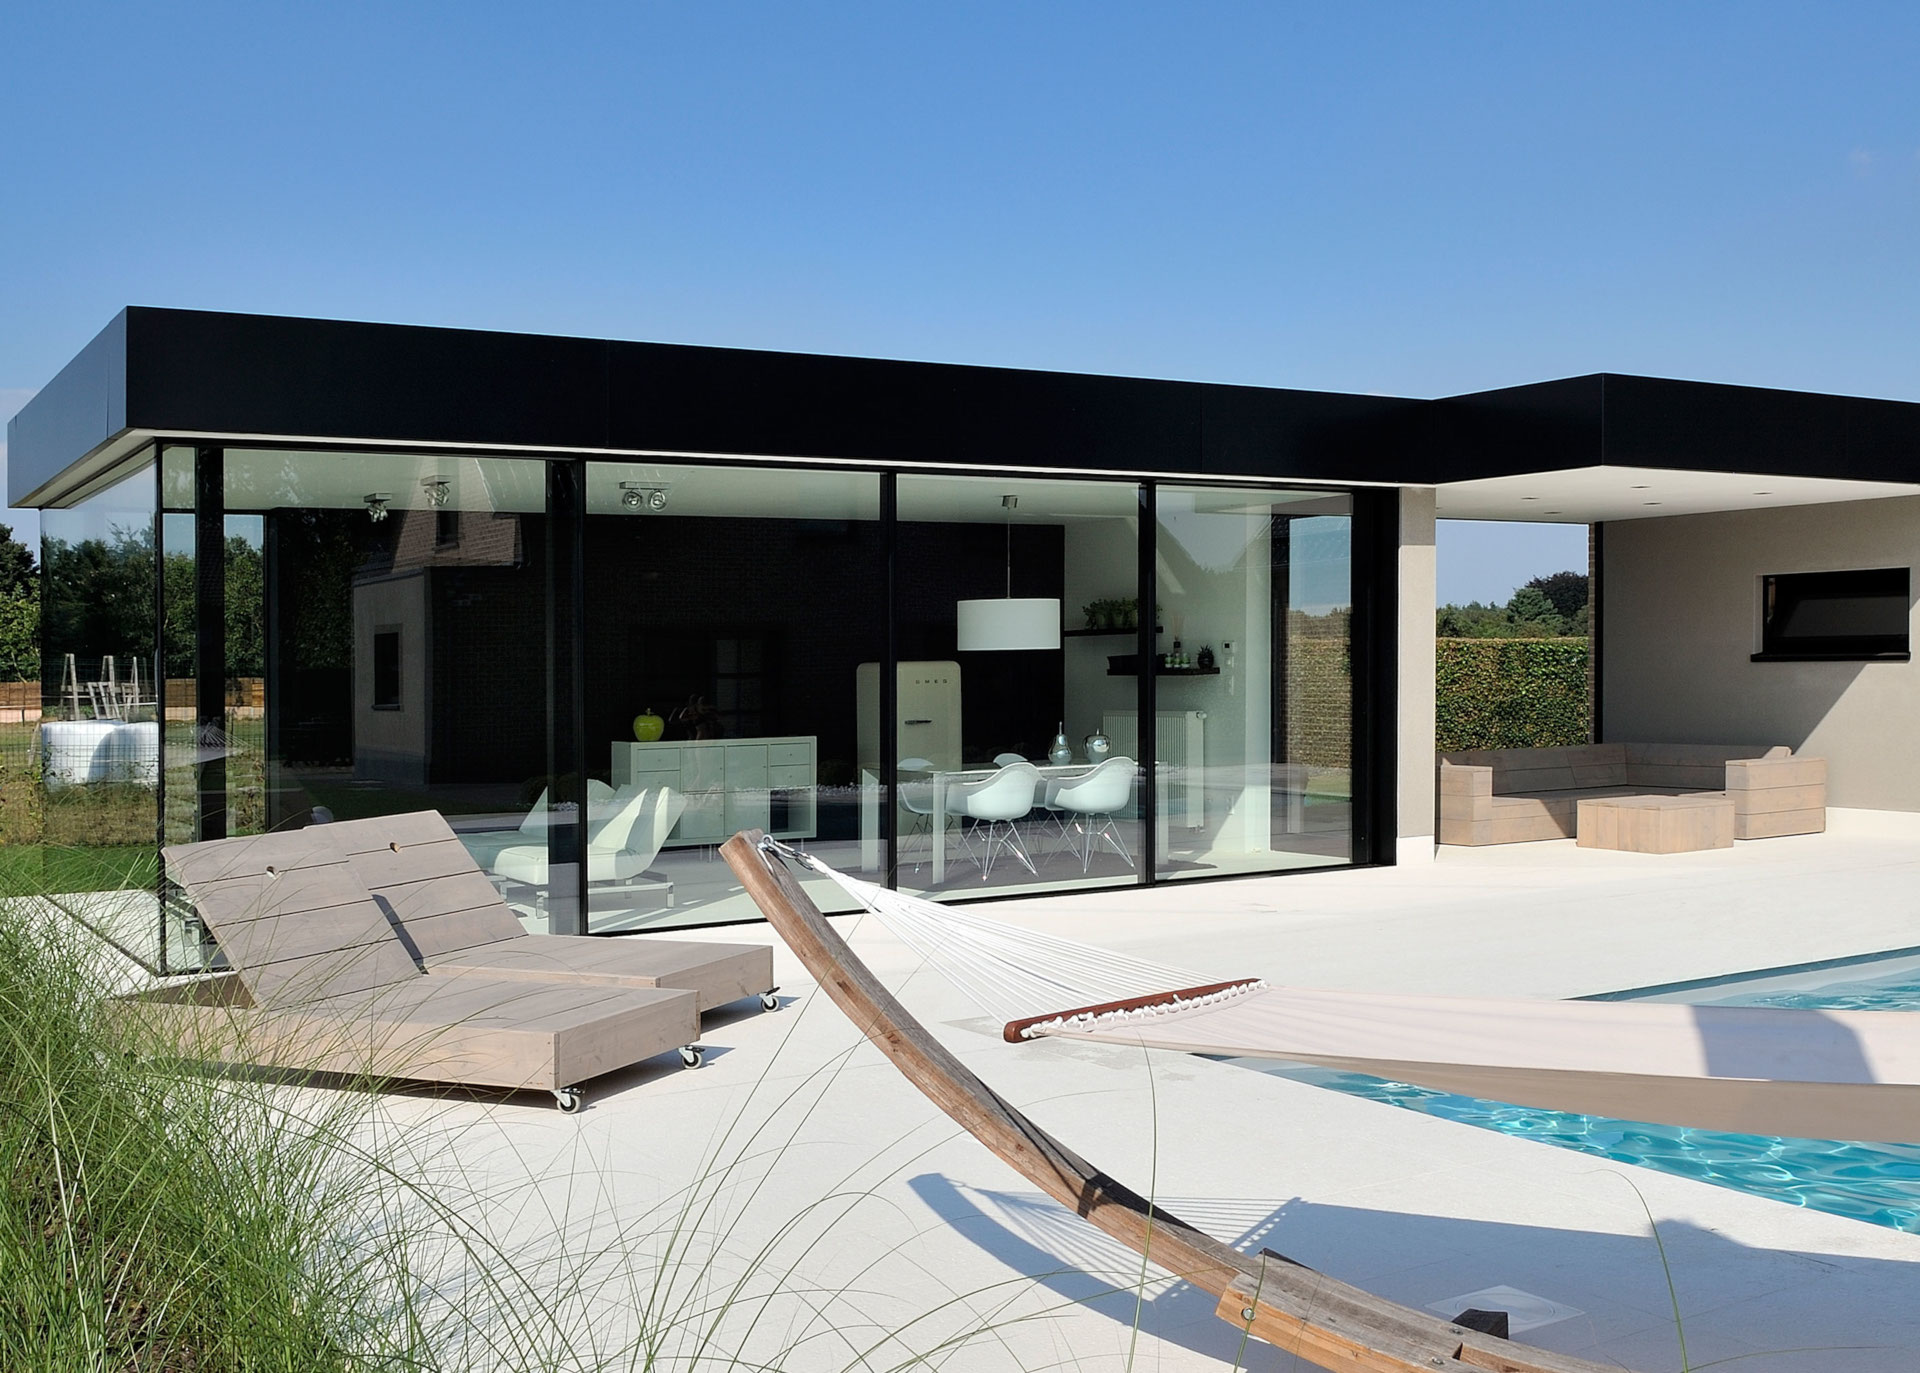 sliding-glass-doors-pool-house